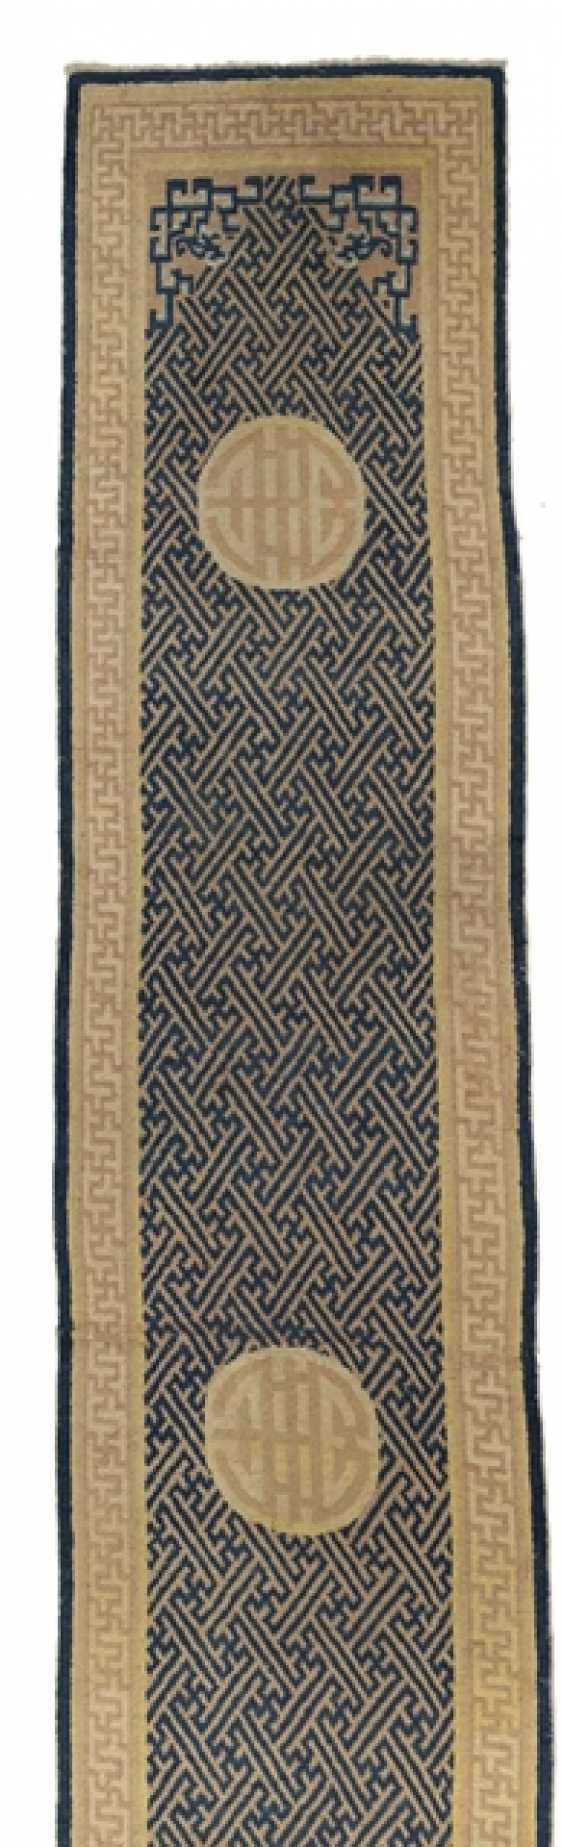 Rug with Swastika-grid and Shou medallions - photo 1